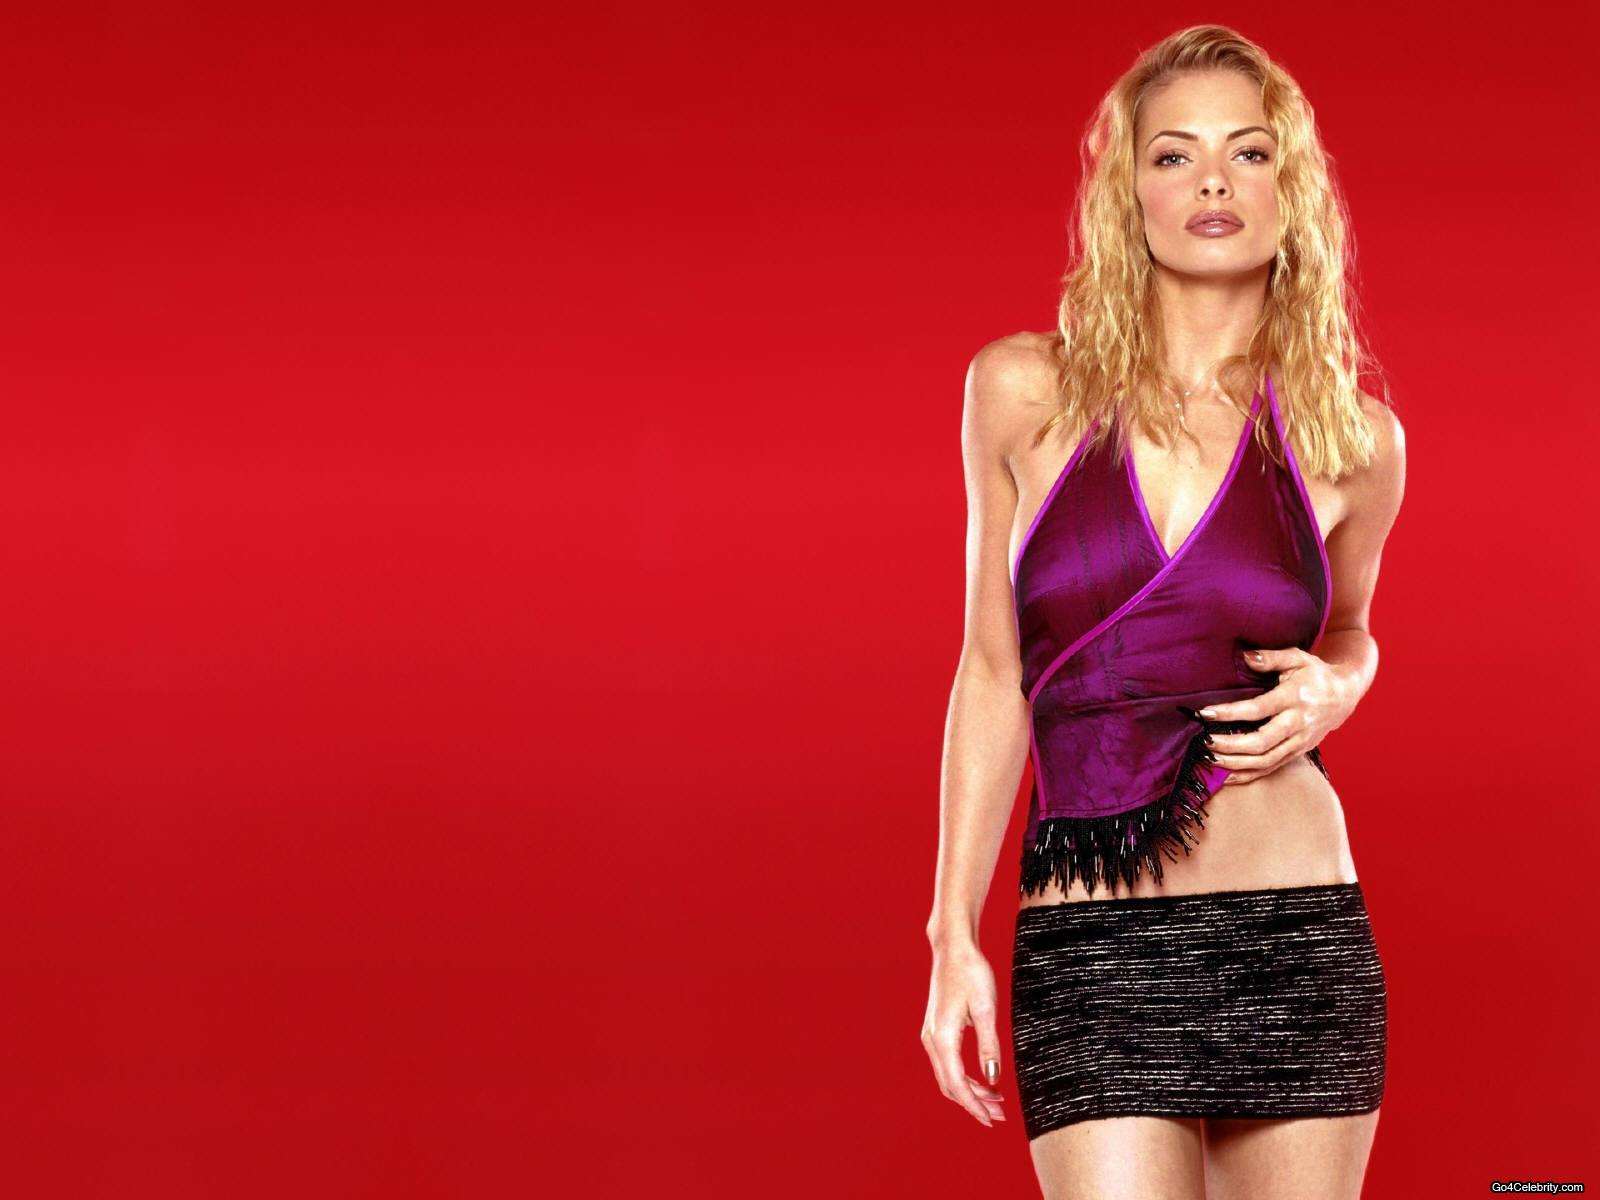 1600x1200 - Jaime Pressly Wallpapers 31